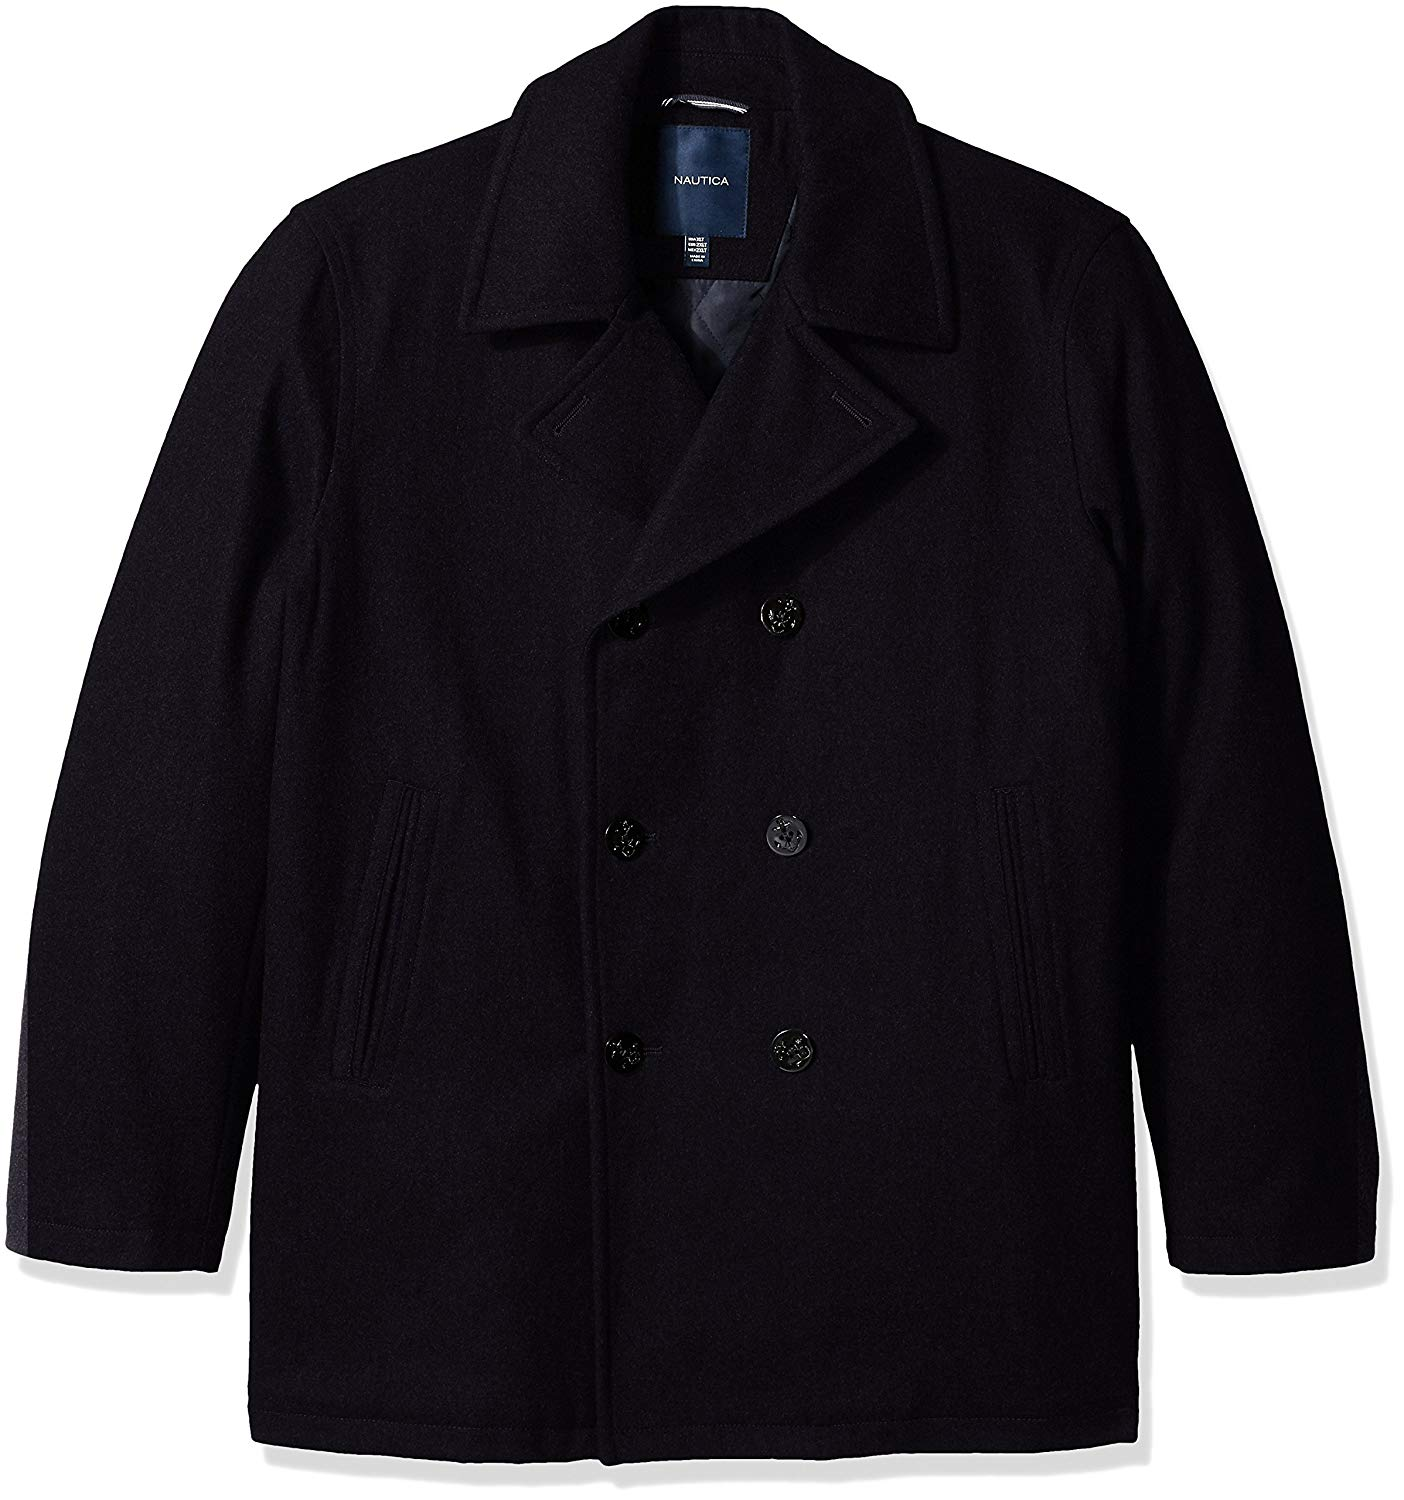 nautica big and tall wool peacoat, casual fashion, casual outfits, casual clothes, casual wear